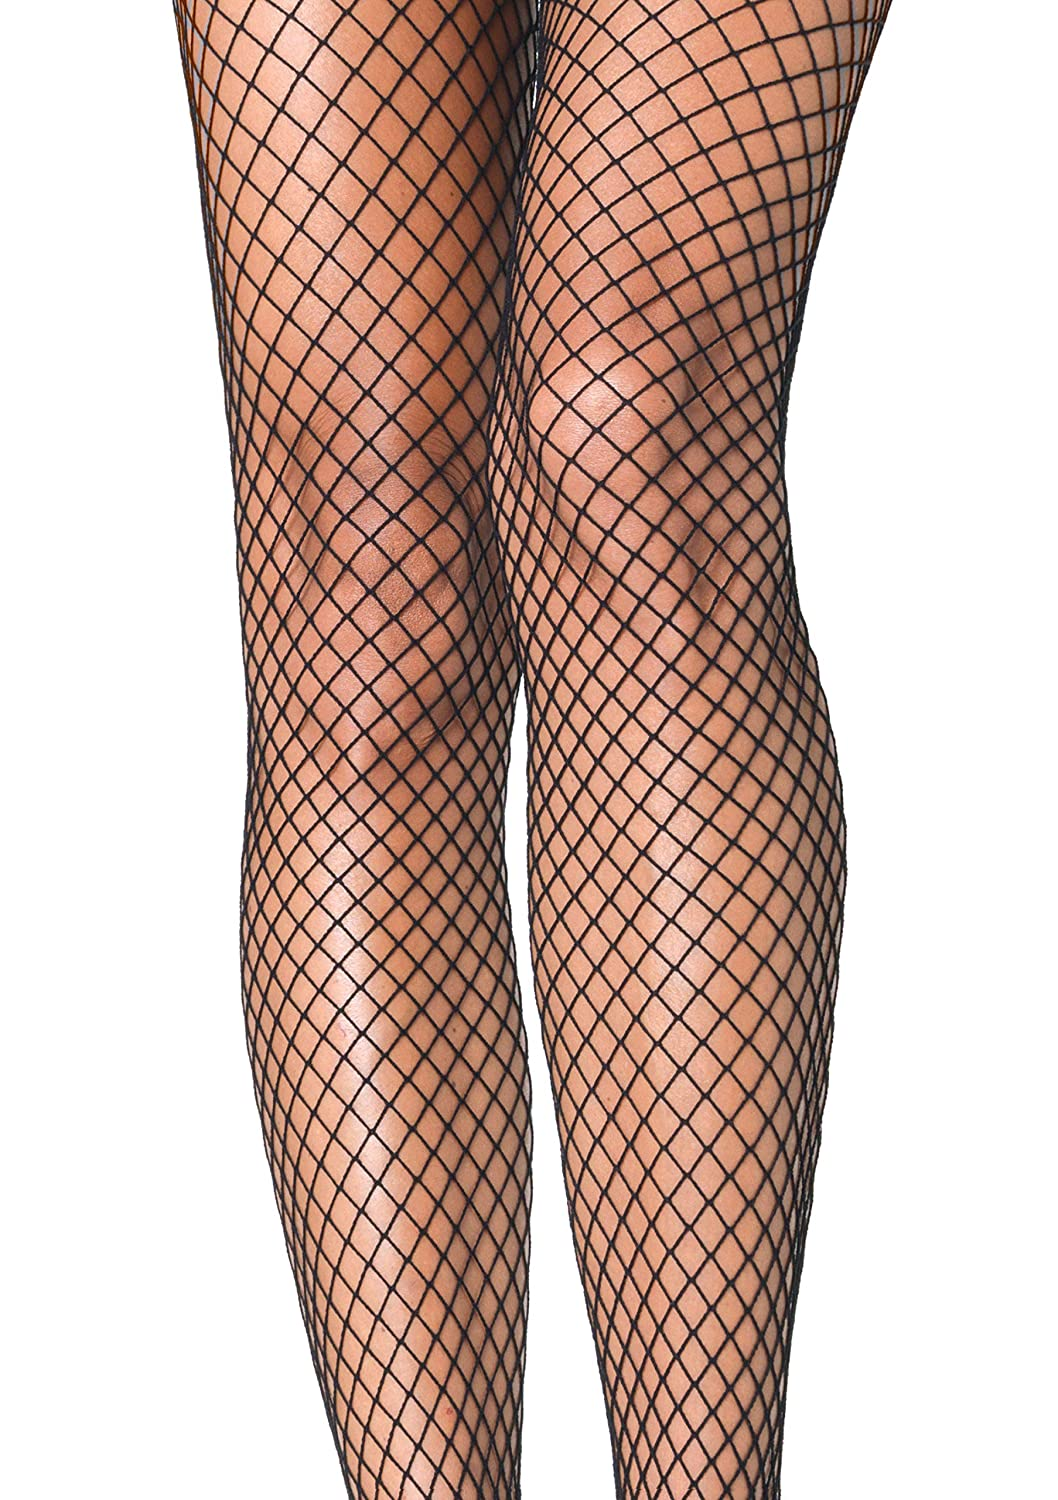 04a083bbb35 Leg Avenue Women s Industrial Net Pantyhose at Amazon Women s Clothing  store  Adult Exotic Hosiery